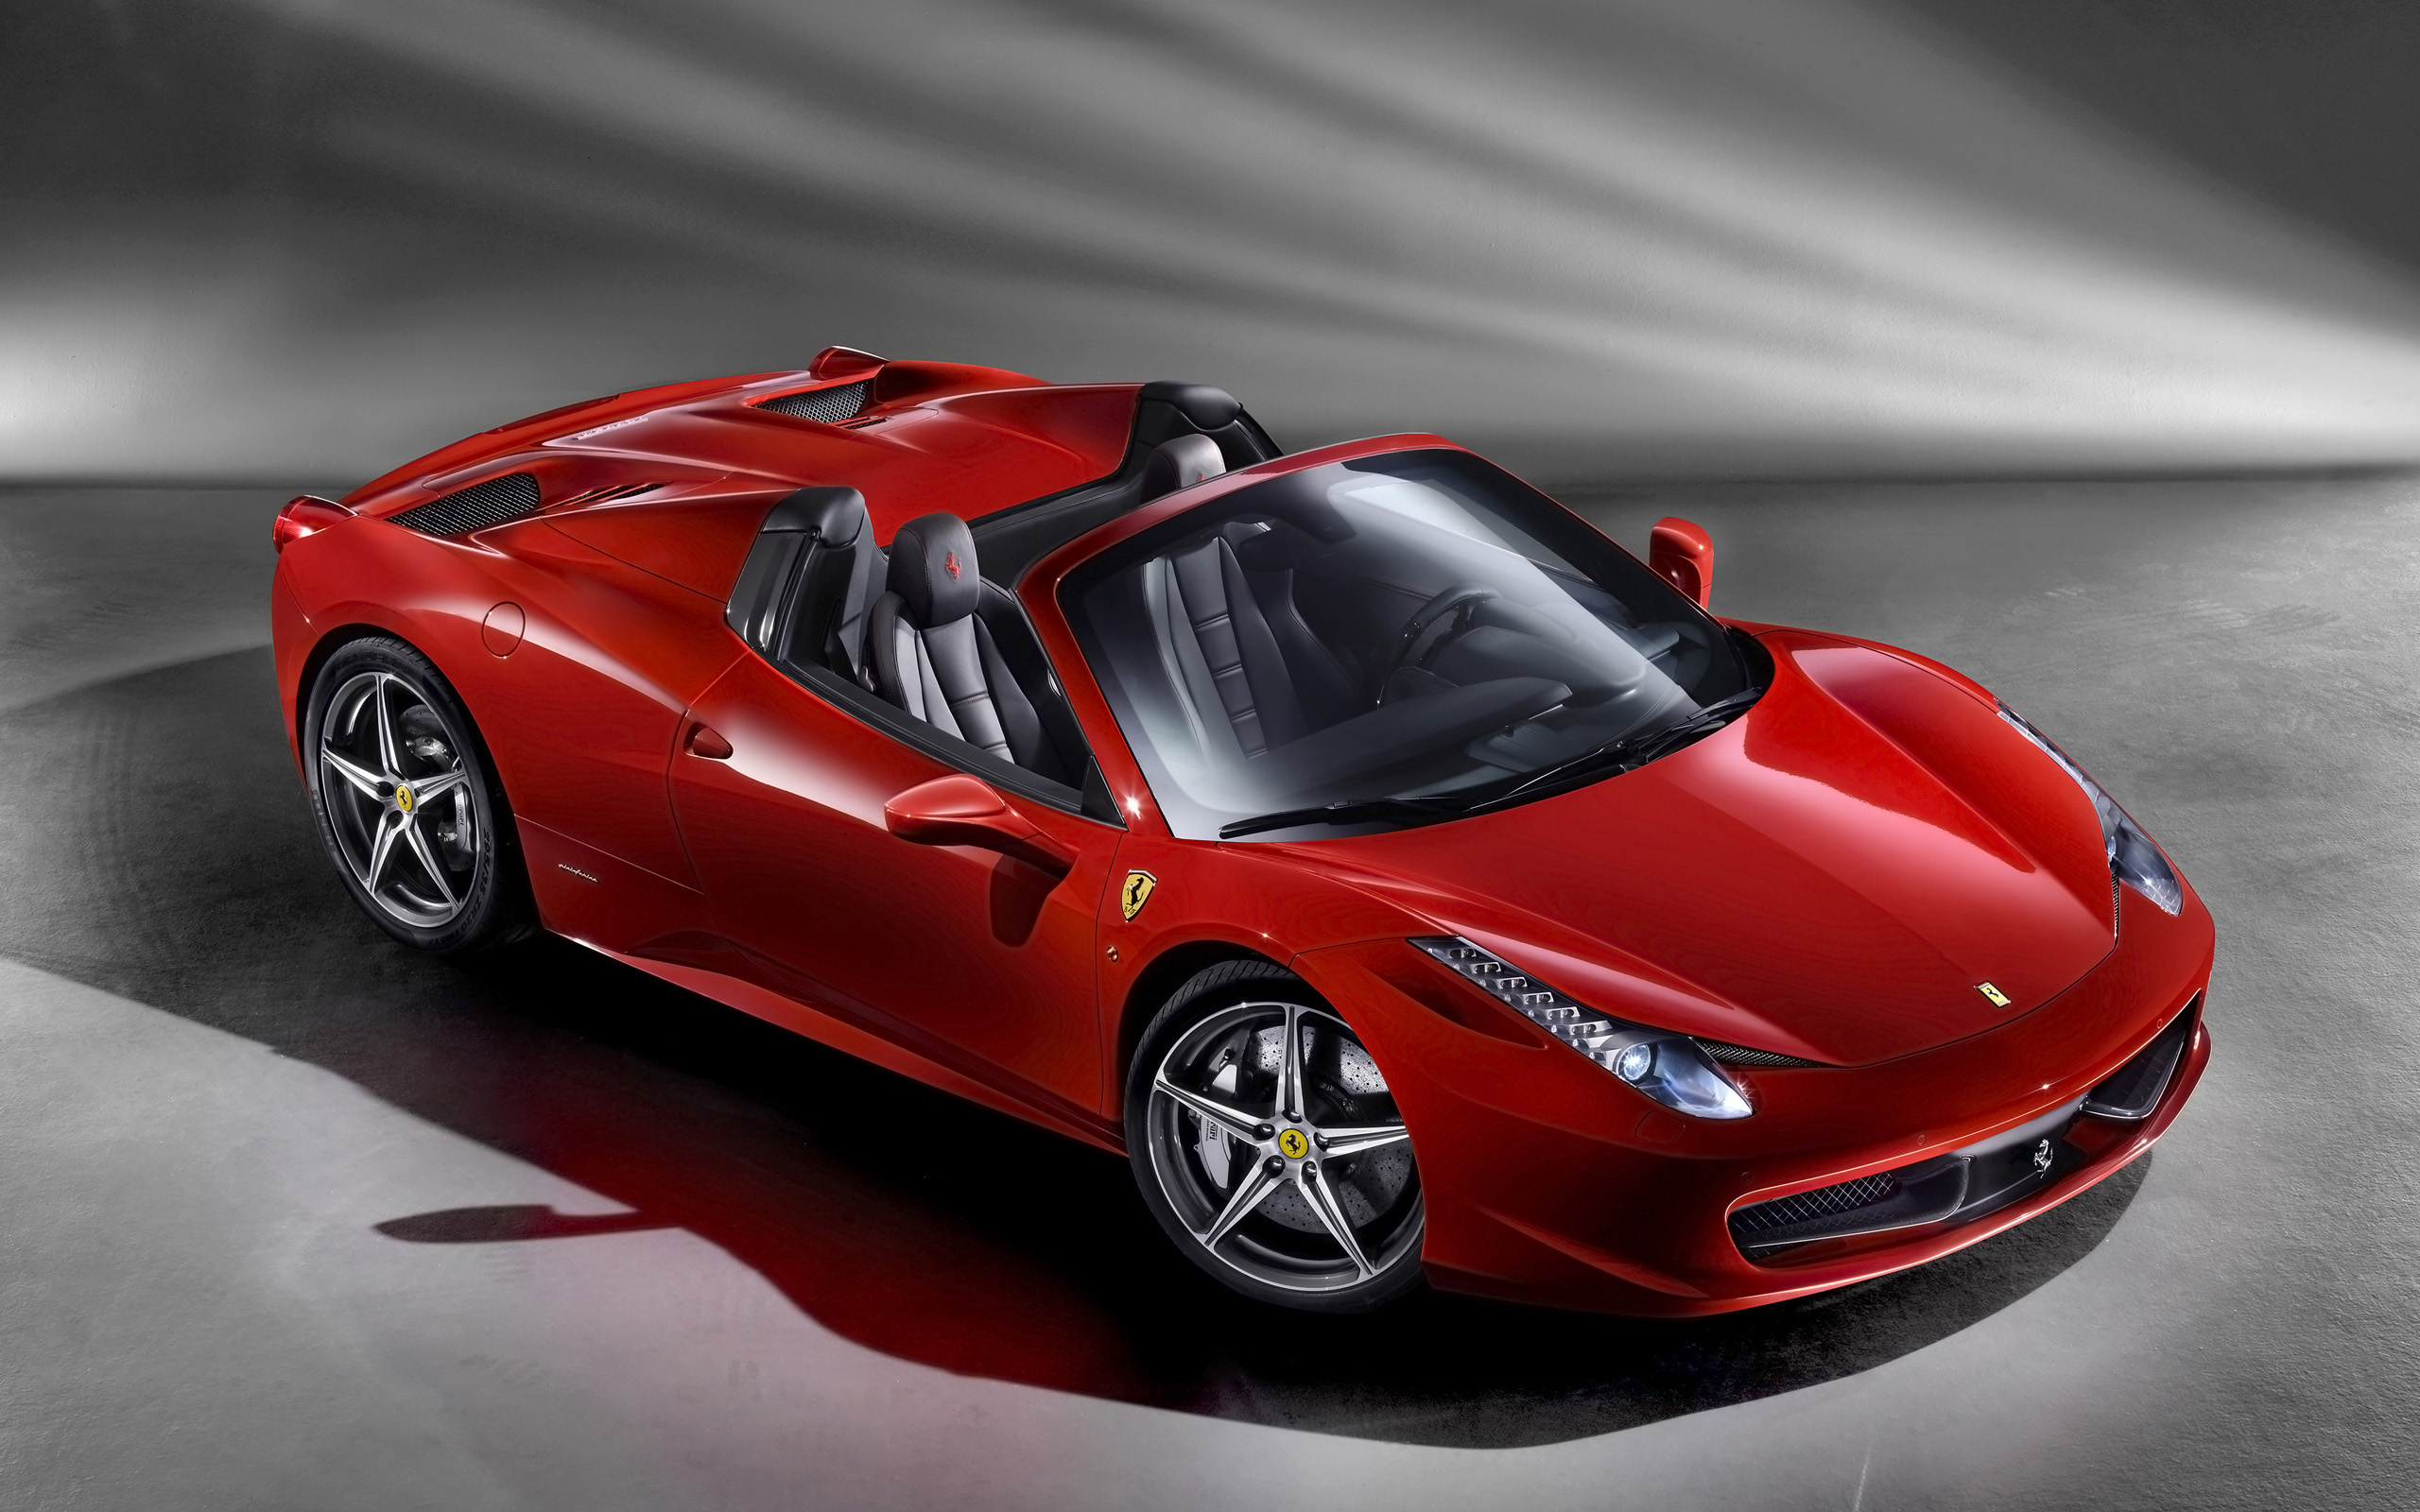 2560x1600 - Ferrari 458 Italia Wallpapers 19